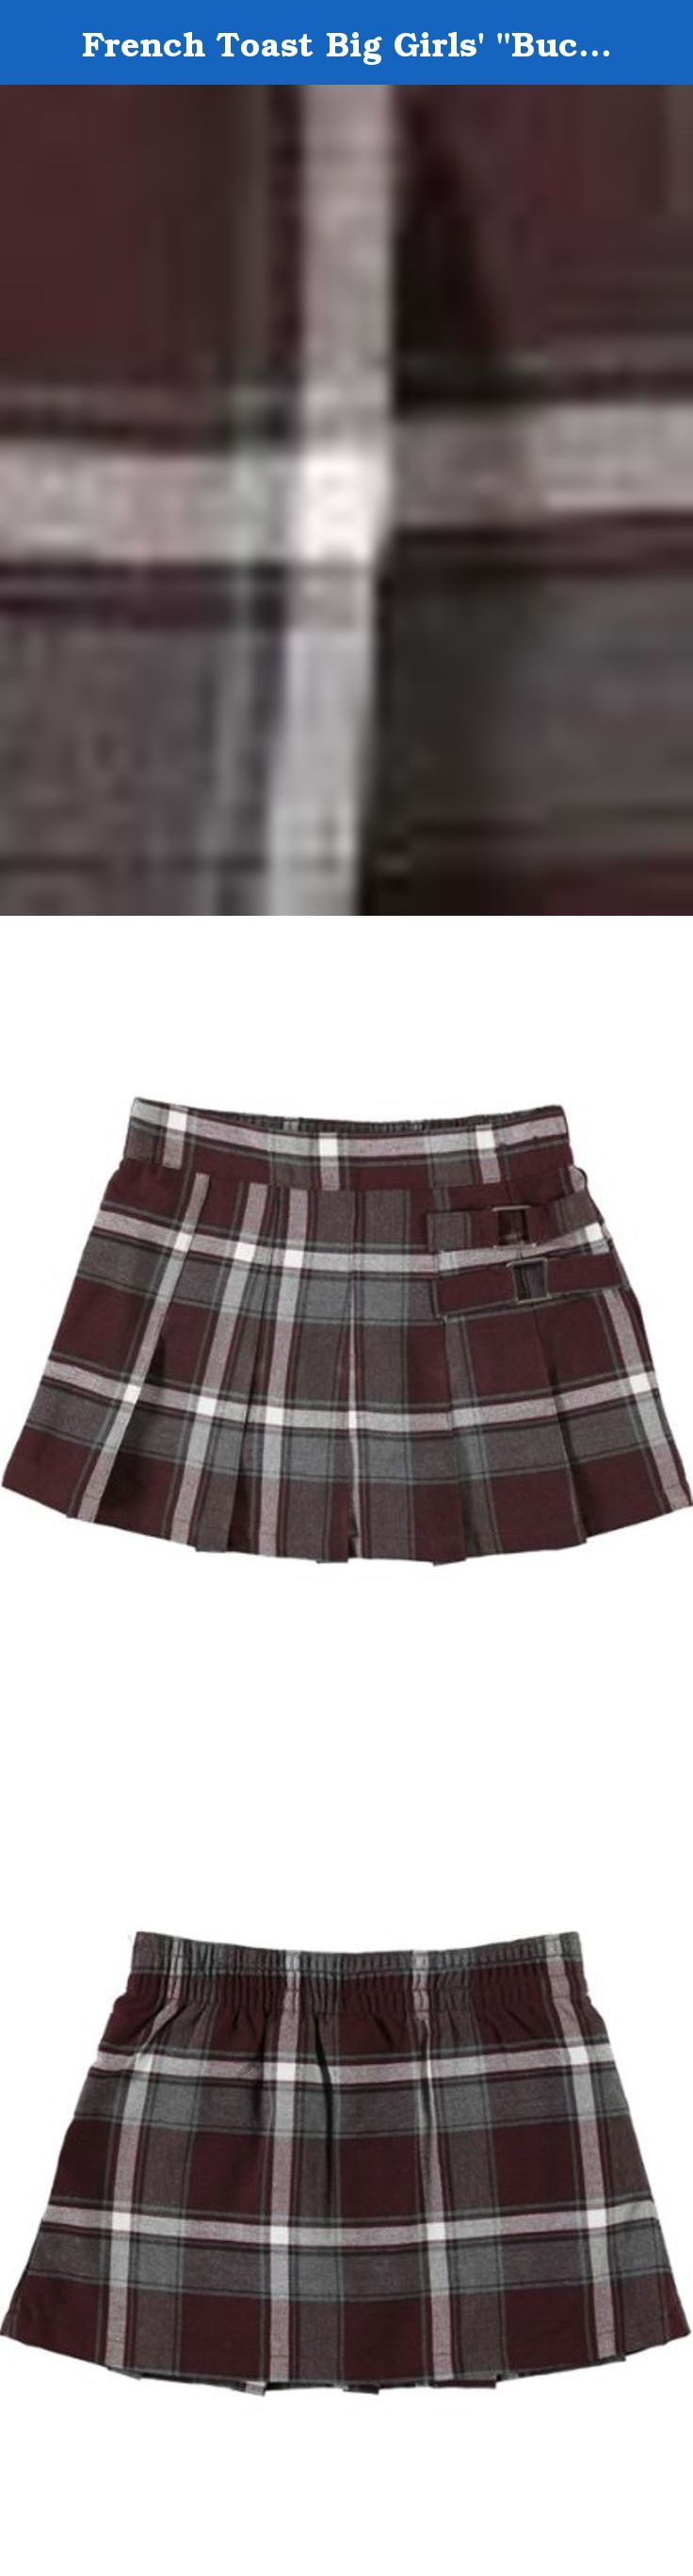 """French Toast Big Girls' """"Buckled"""" Plaid Scooter Skirt - burgundy/gray/white. This plaid scooter by French Toast is perfect for cheerleaders and active girls. Shorts underneath the skirt provide modesty and comfort during sport. Pleated front and flat back. 100% Polyester Imported Machine Wash... Holiday."""